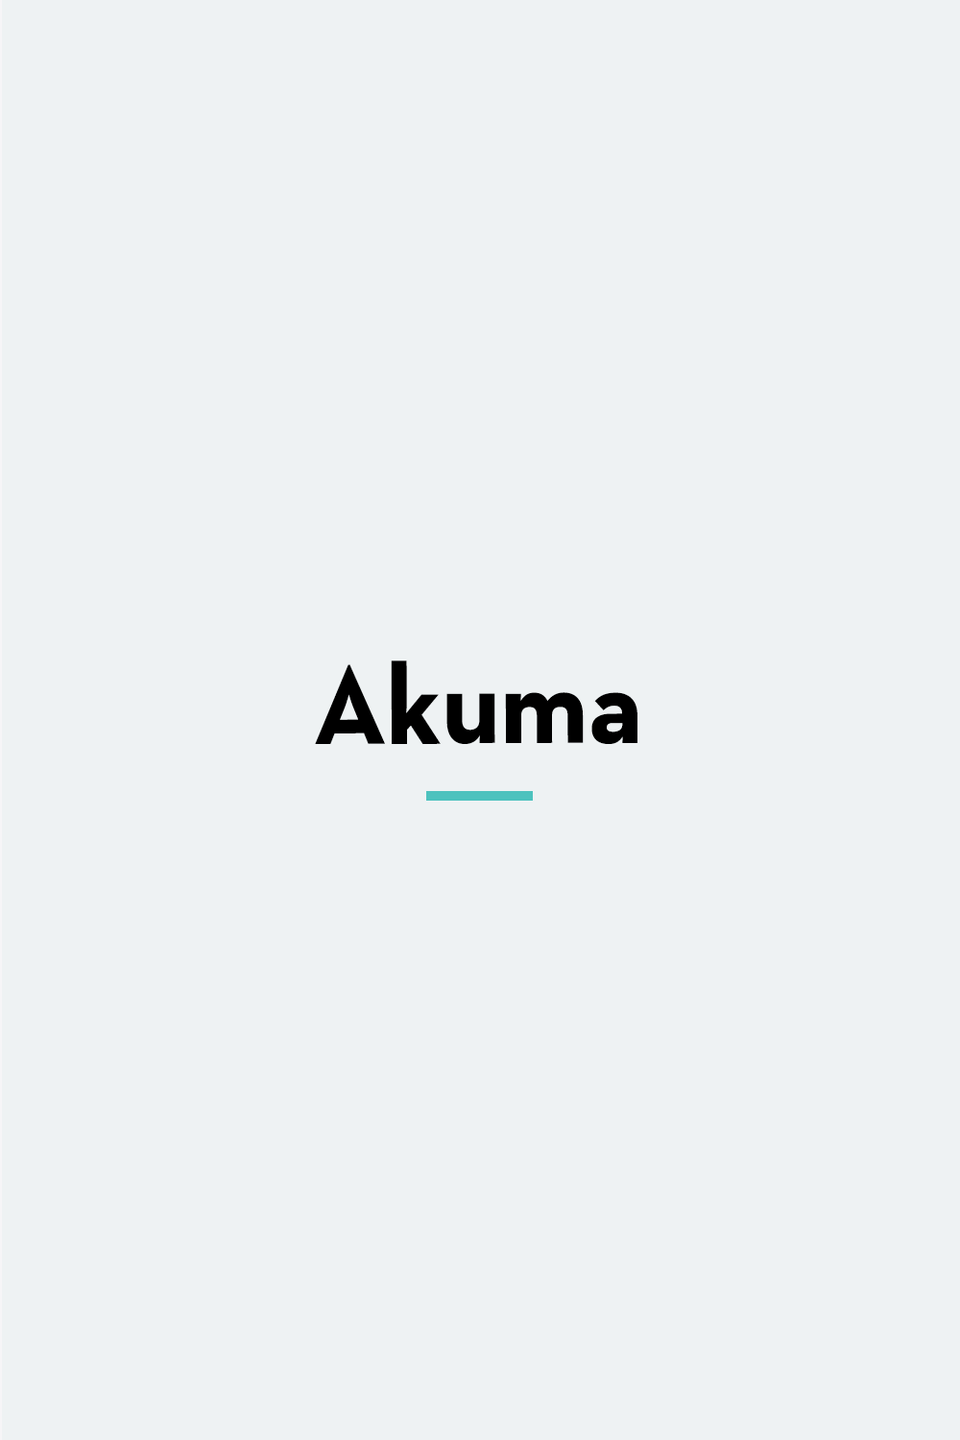 """<p>Parents in Japan wanted to name their child Akuma, which means """"Devil,"""" and the case received so much attention that a member of the <a href=""""https://www.latimes.com/archives/la-xpm-1994-01-15-mn-12064-story.html"""" rel=""""nofollow noopener"""" target=""""_blank"""" data-ylk=""""slk:Prime Minister's cabinet issued a statement"""" class=""""link rapid-noclick-resp"""">Prime Minister's cabinet issued a statement</a> guiding parents against the name.</p>"""